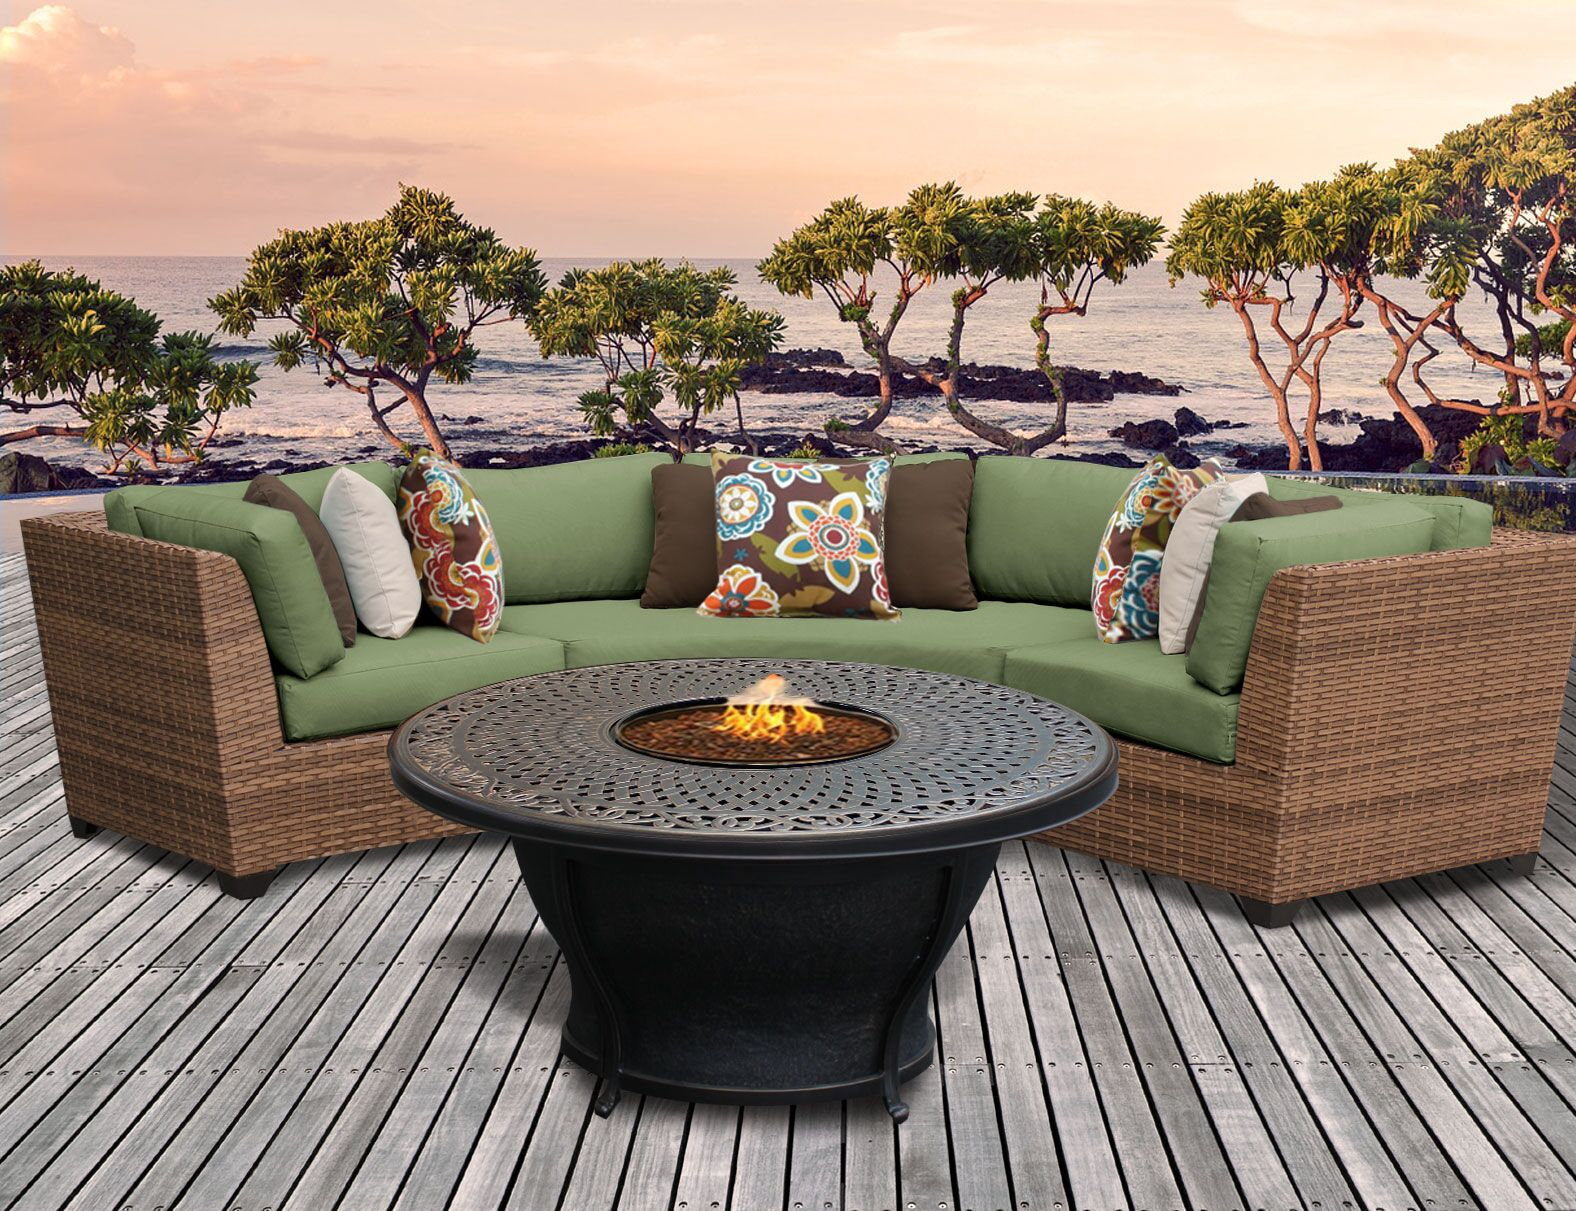 Asellus 4 Piece Sectional Set with Cushions Color: Cilantro